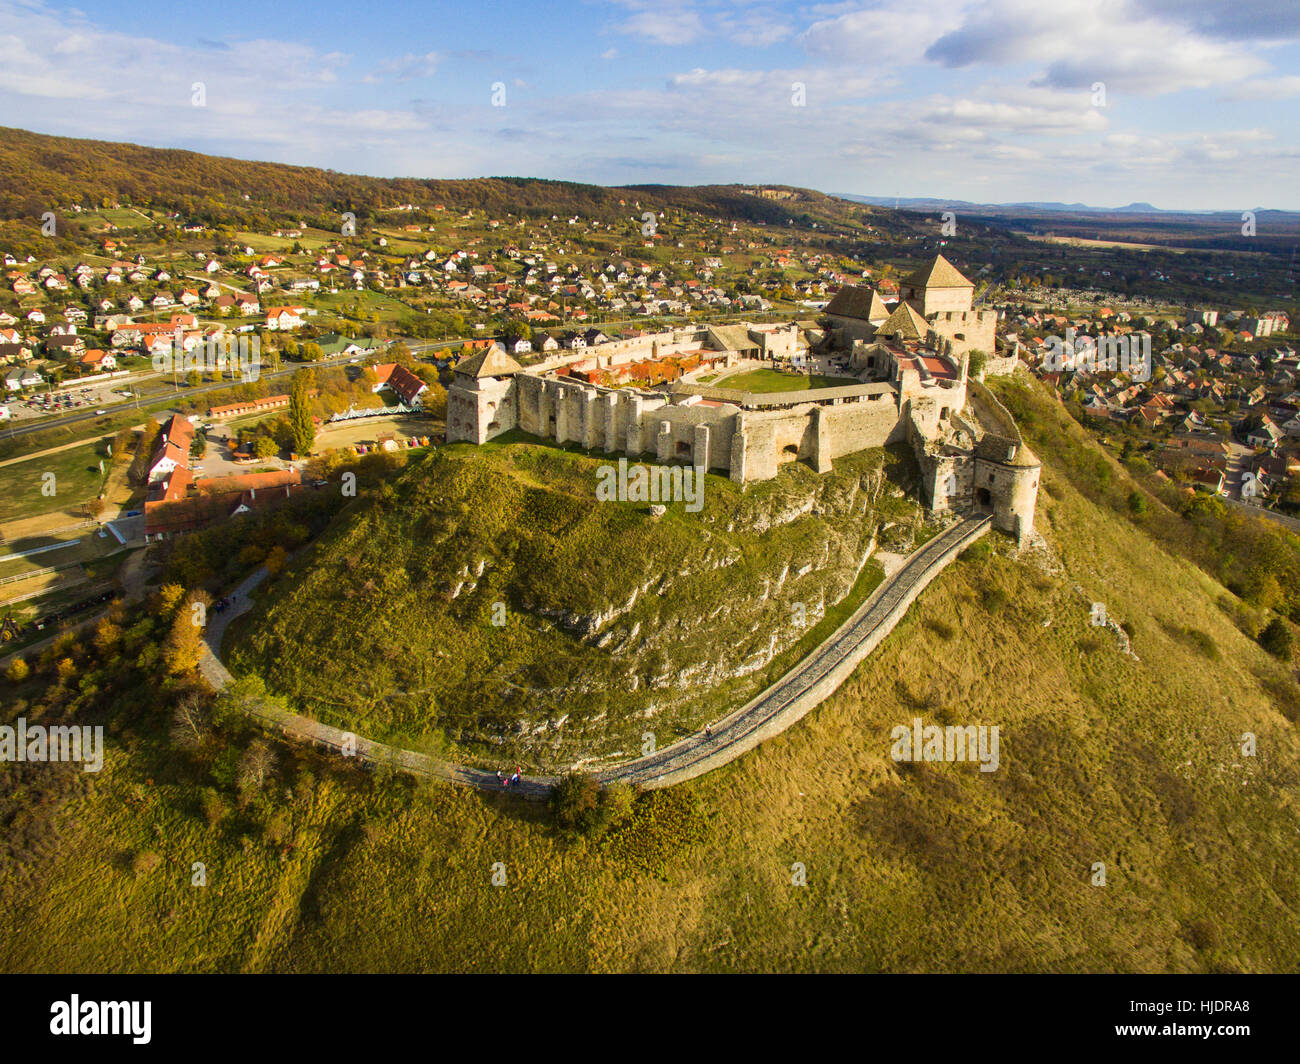 High angle view of Sumeg castle in Hungary Stock Photo